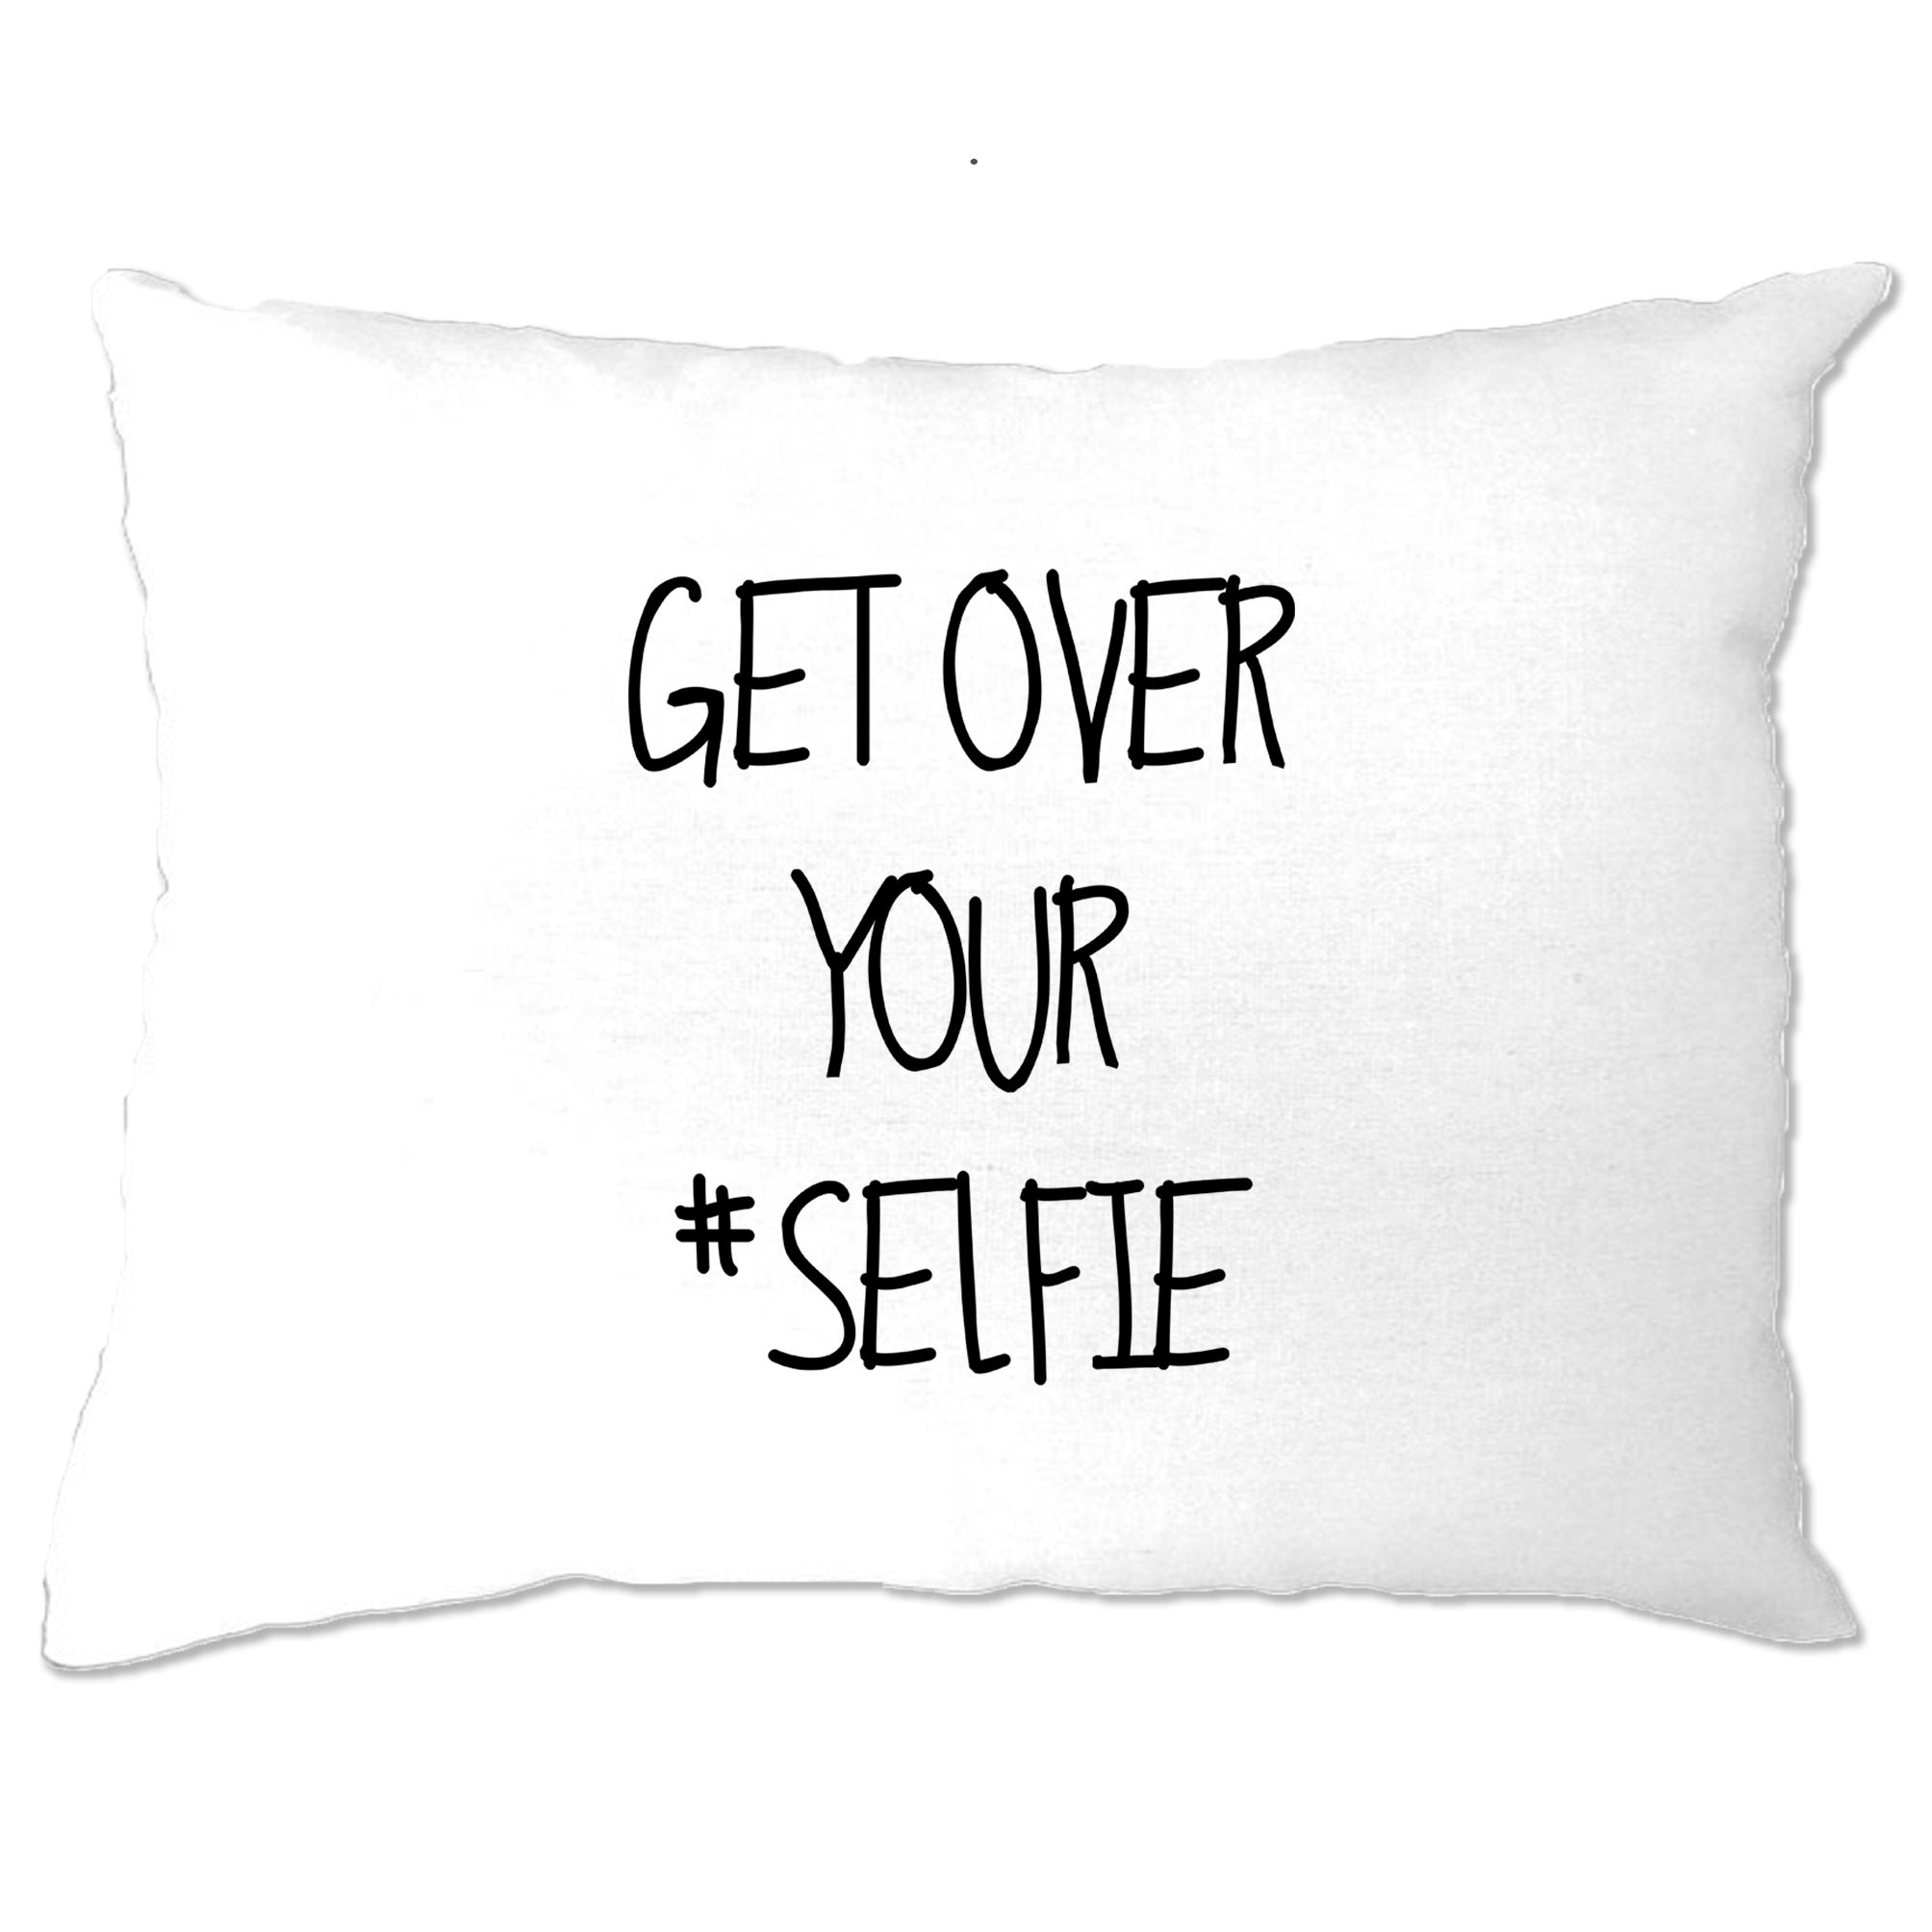 Get Over Yourself Selfie Pillow Case